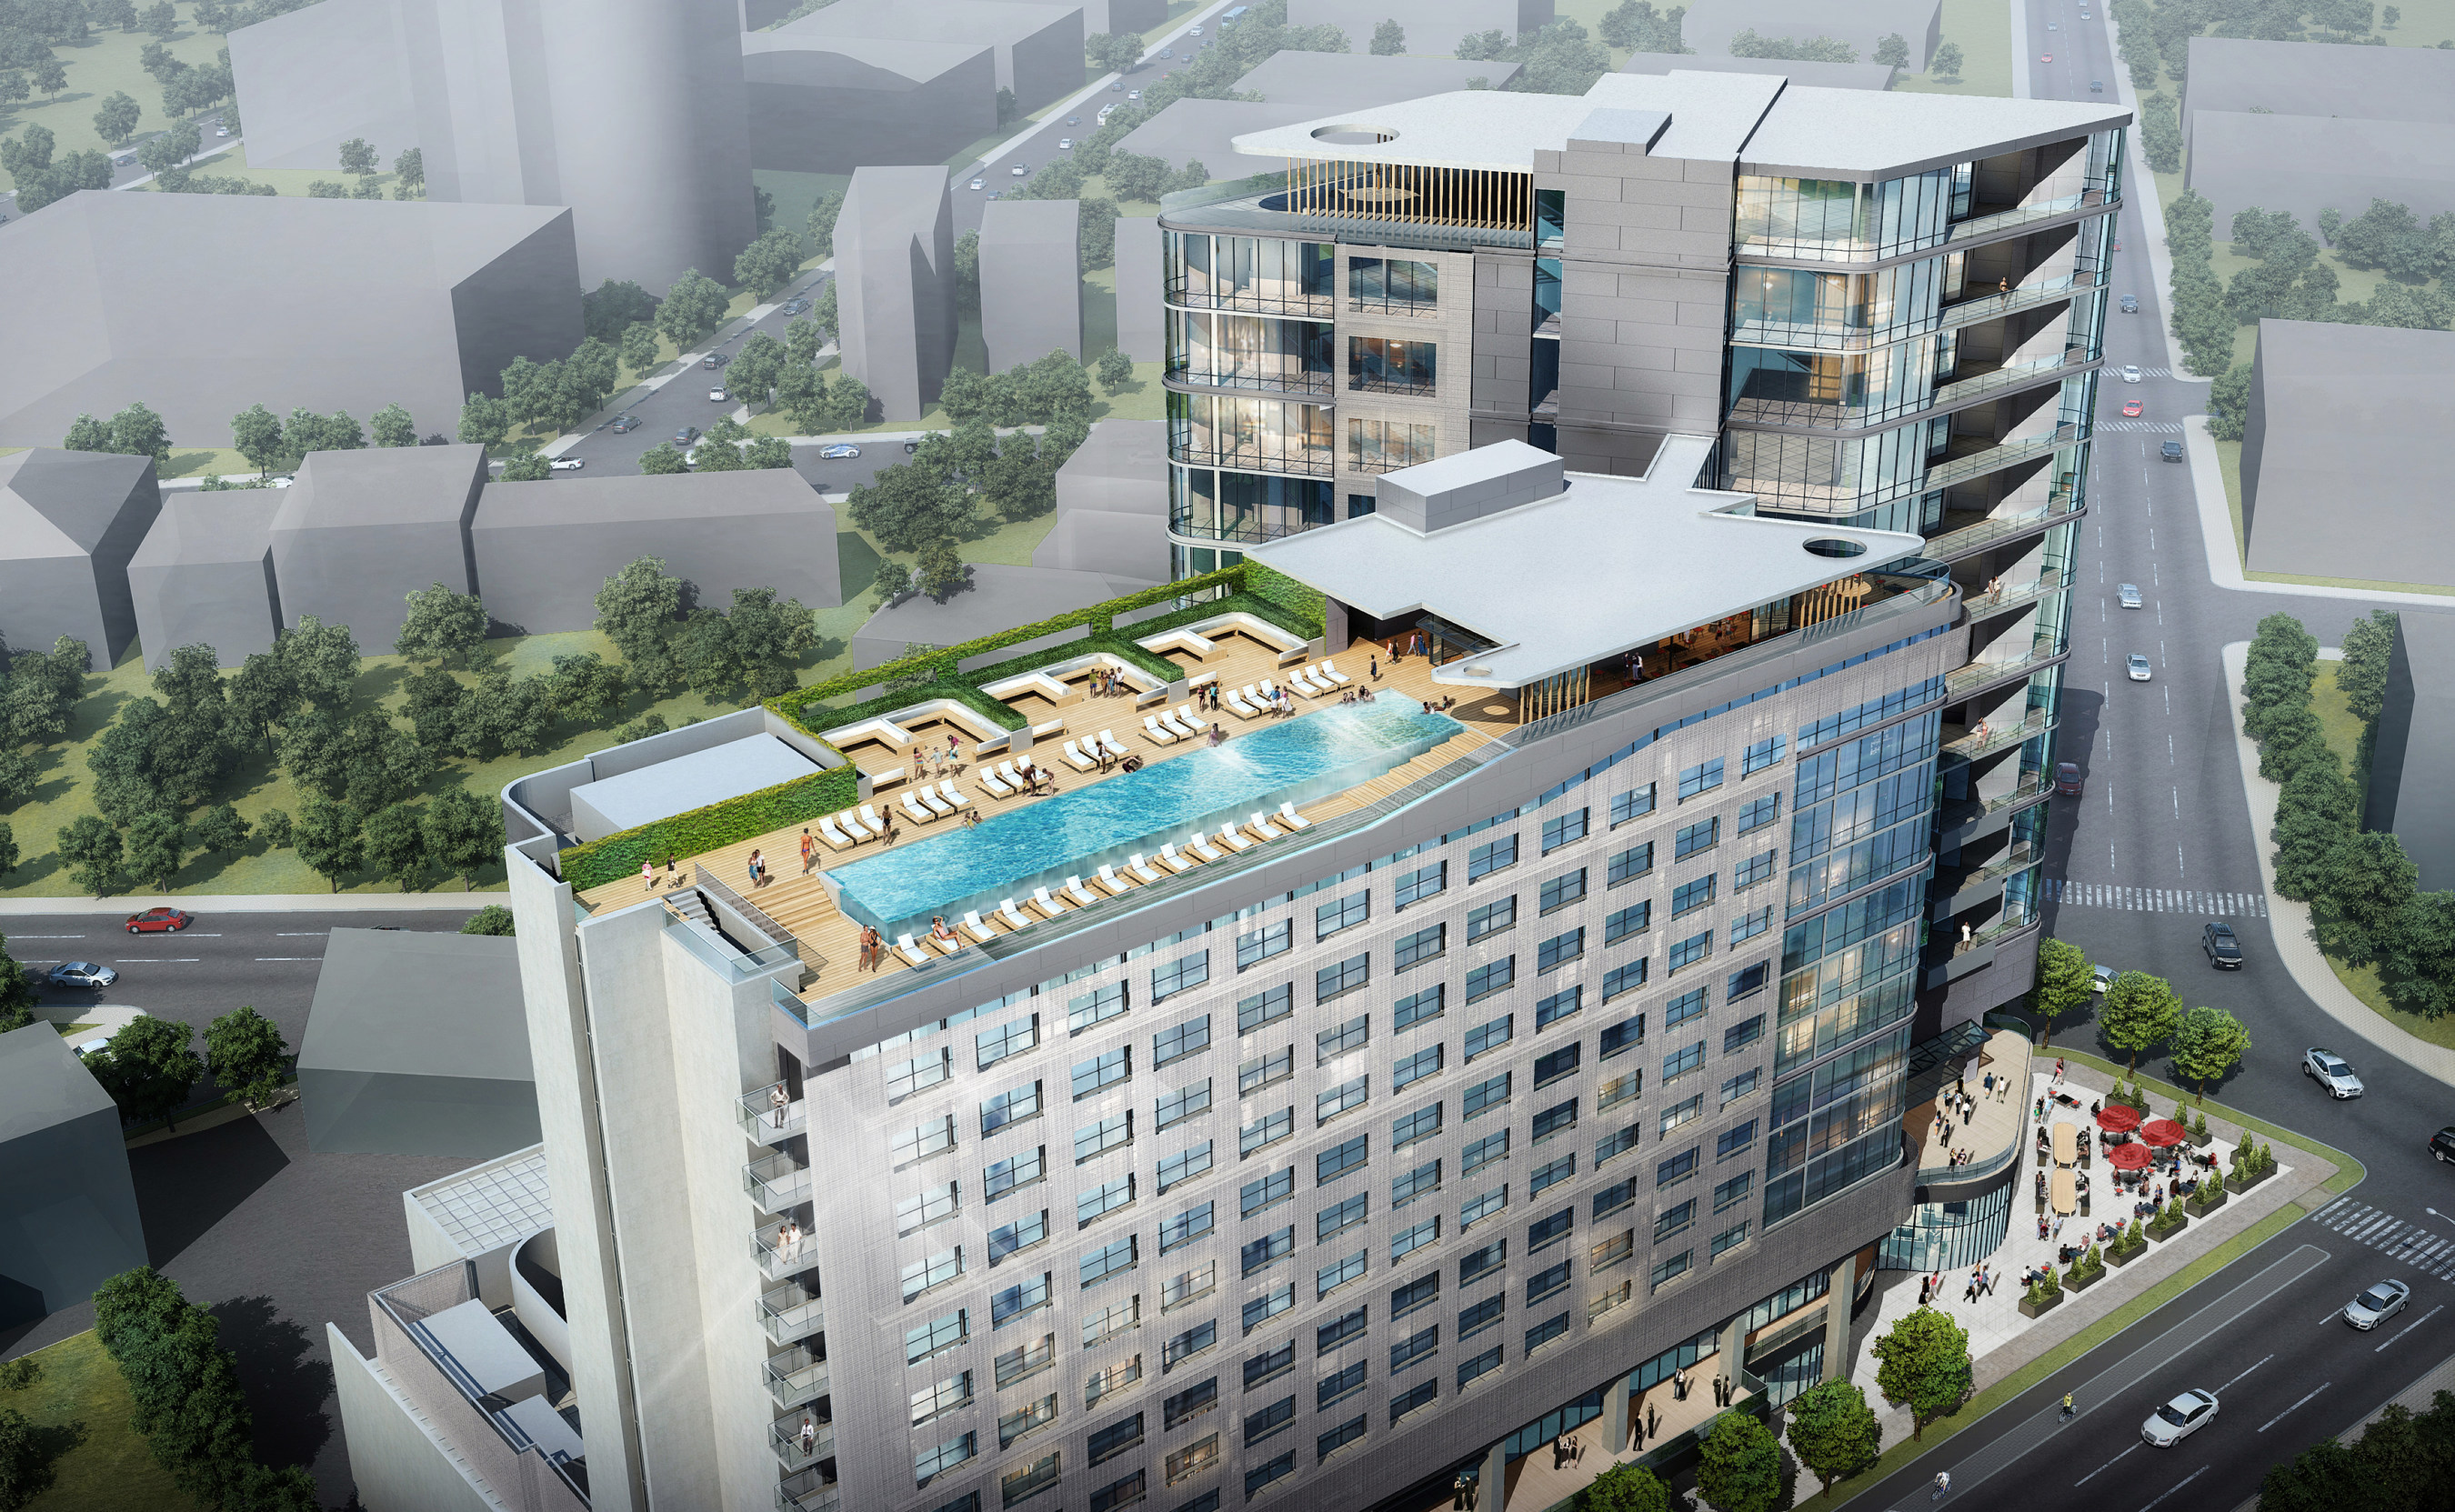 Virgin Hotels reveals its Nashville building designs with local ownership and developer Dean Chase of Construction Management firm D.F. Chase Inc., and architecture firm, BLUR Workshop. Virgin Hotels Nashville, expected to open in the fall of 2016, will be located at the start of the city's historic and nationally recognized Music Row, with the address One Music Row. The first Virgin Hotels property opened January 15, 2015 in Chicago.